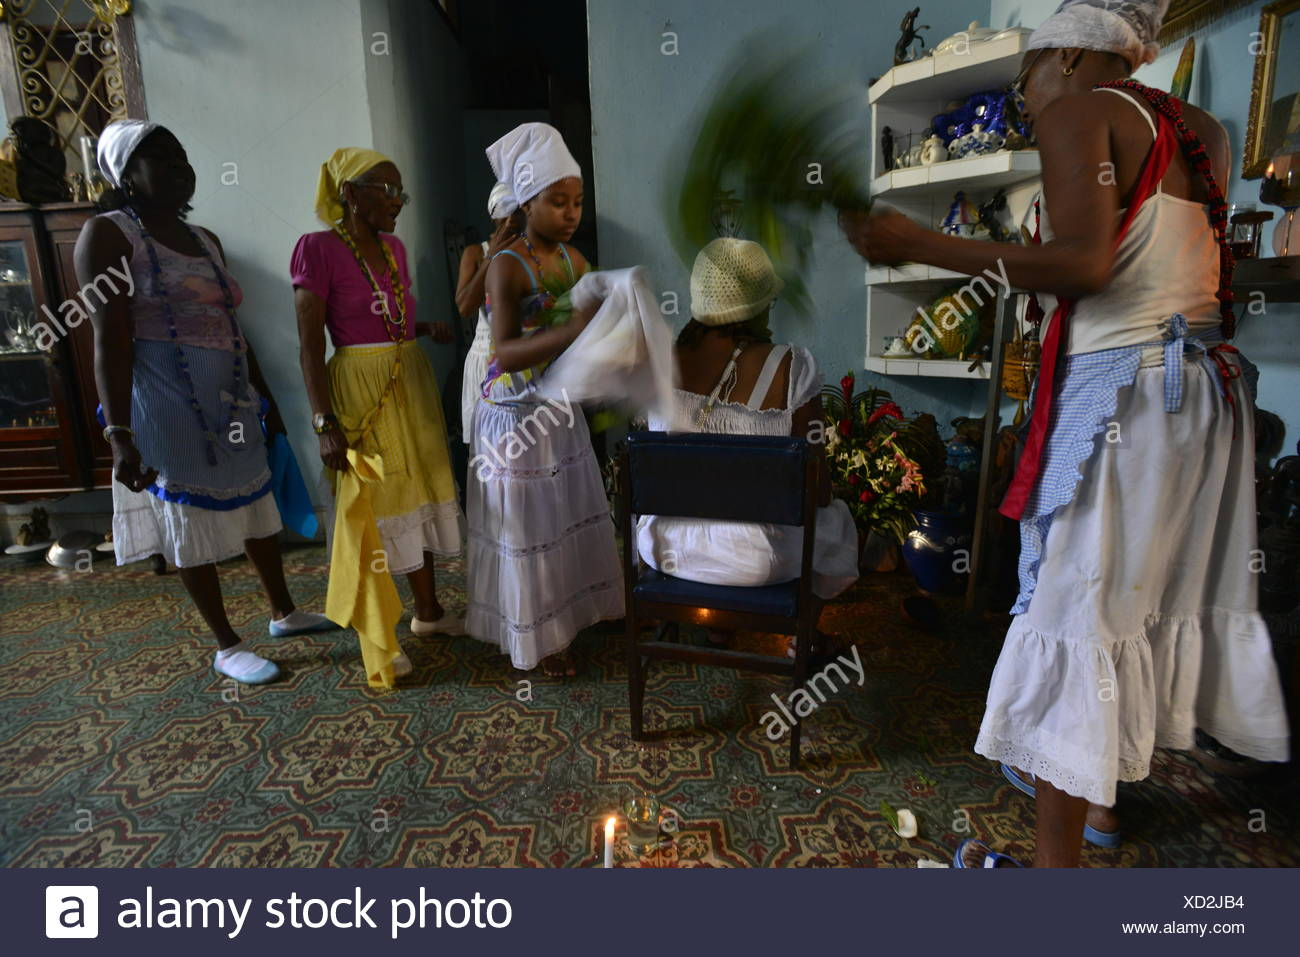 Wearing a yellow skirt, the Palero or Priestess from the Regla de Palo Monte religion performing Santeria rituals. - Stock Image